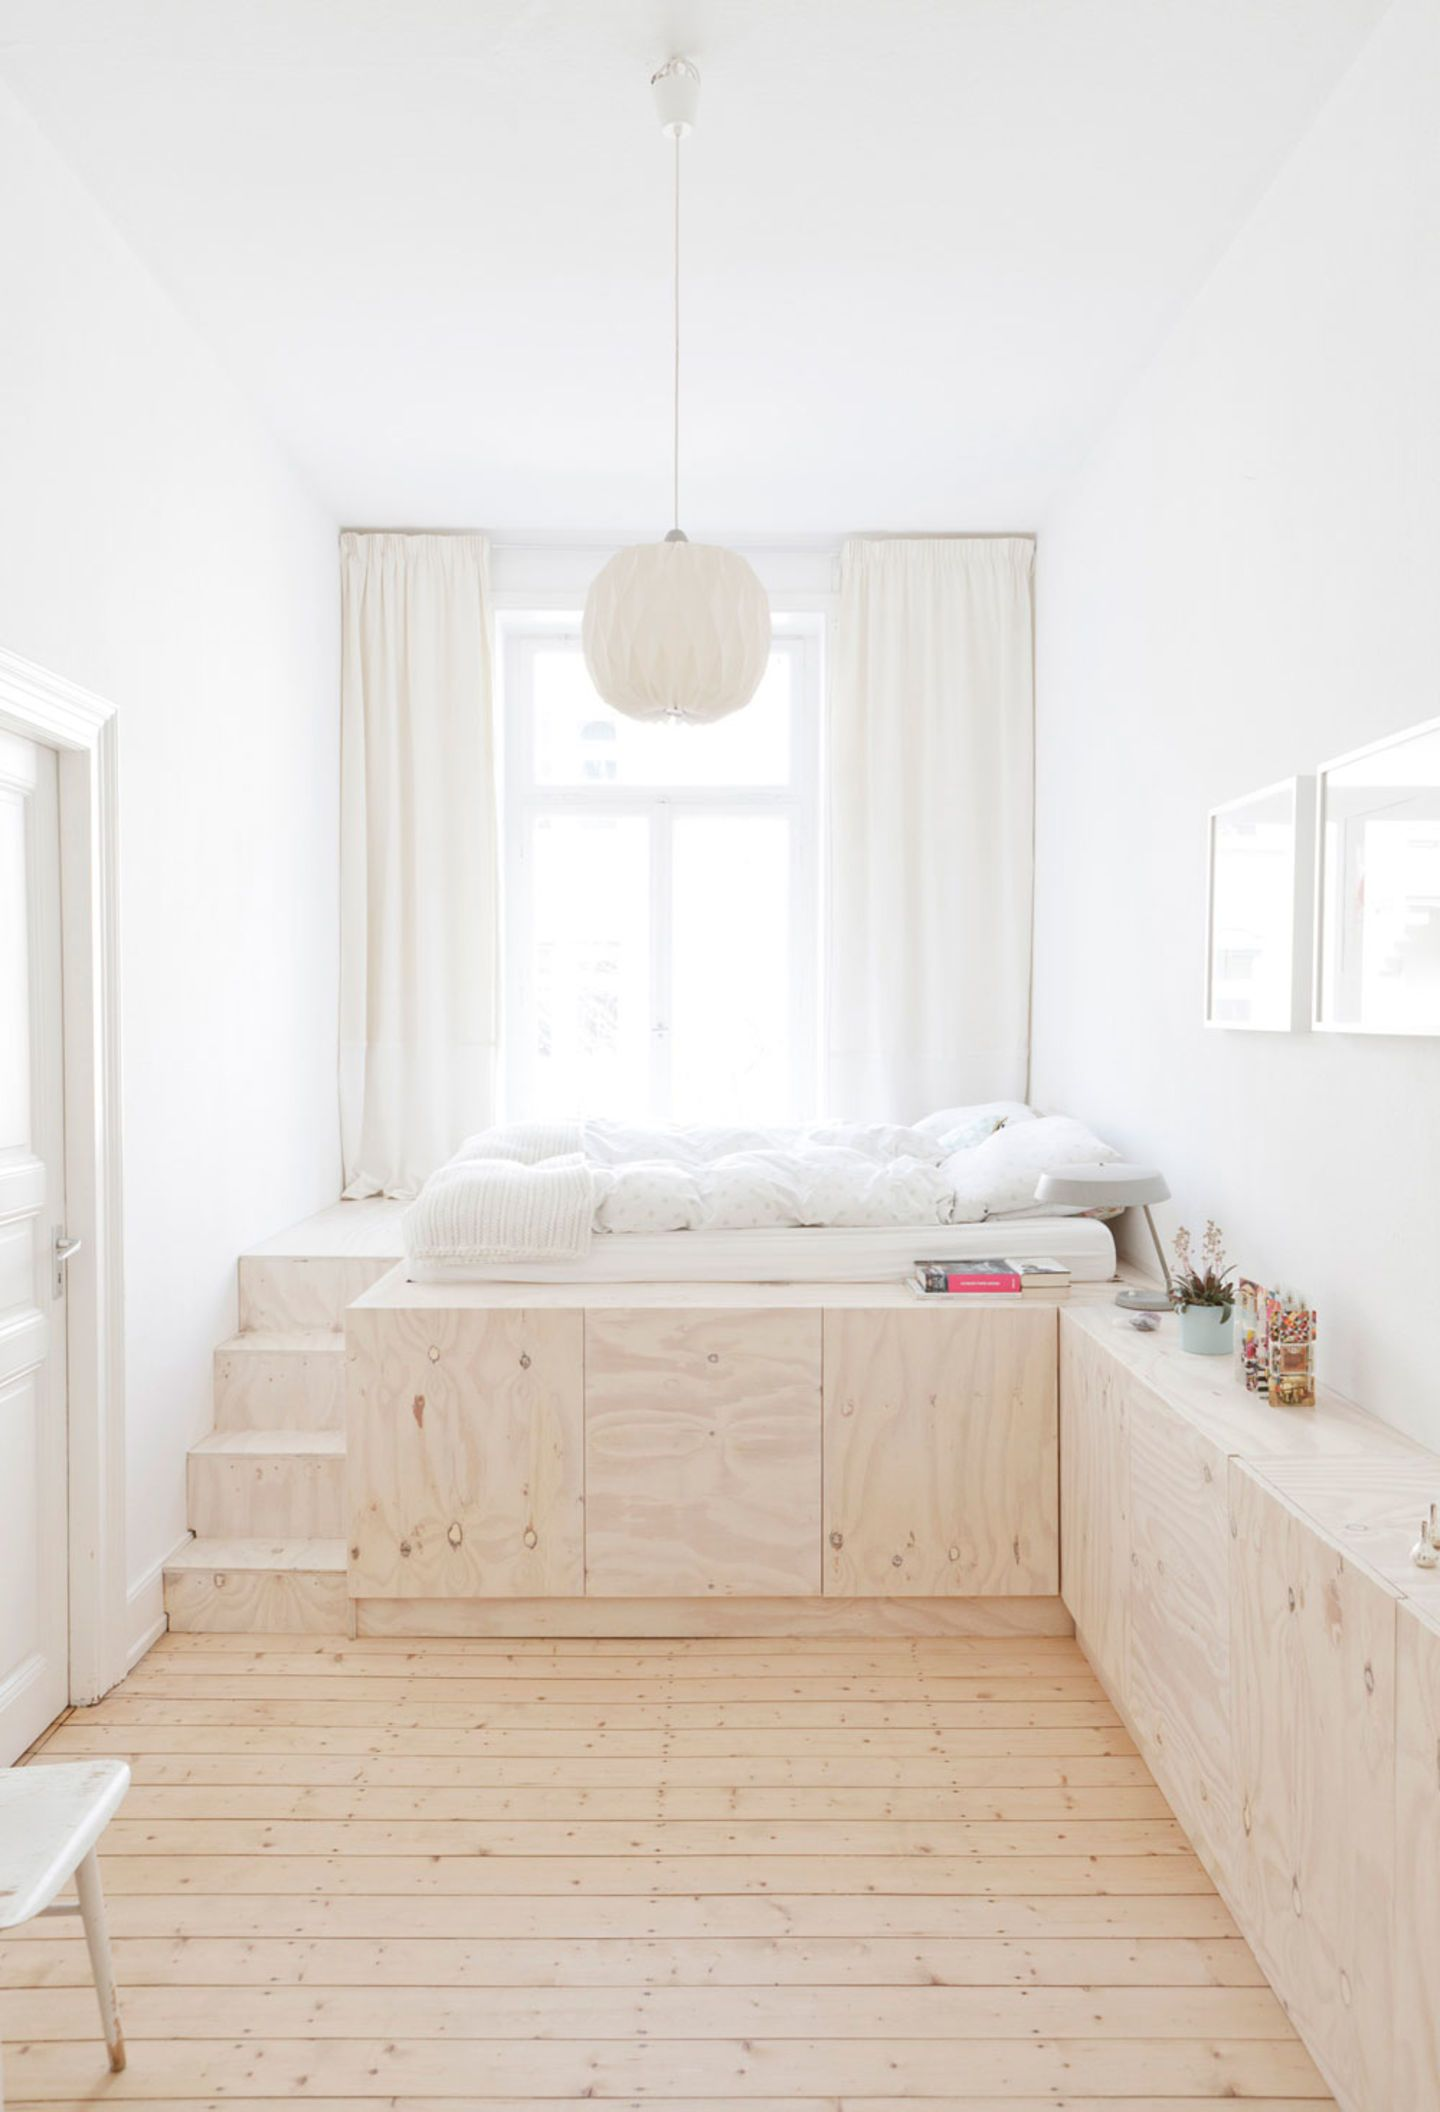 Studio Oink Wooden Platform Bed With Built In Stairs And Storage